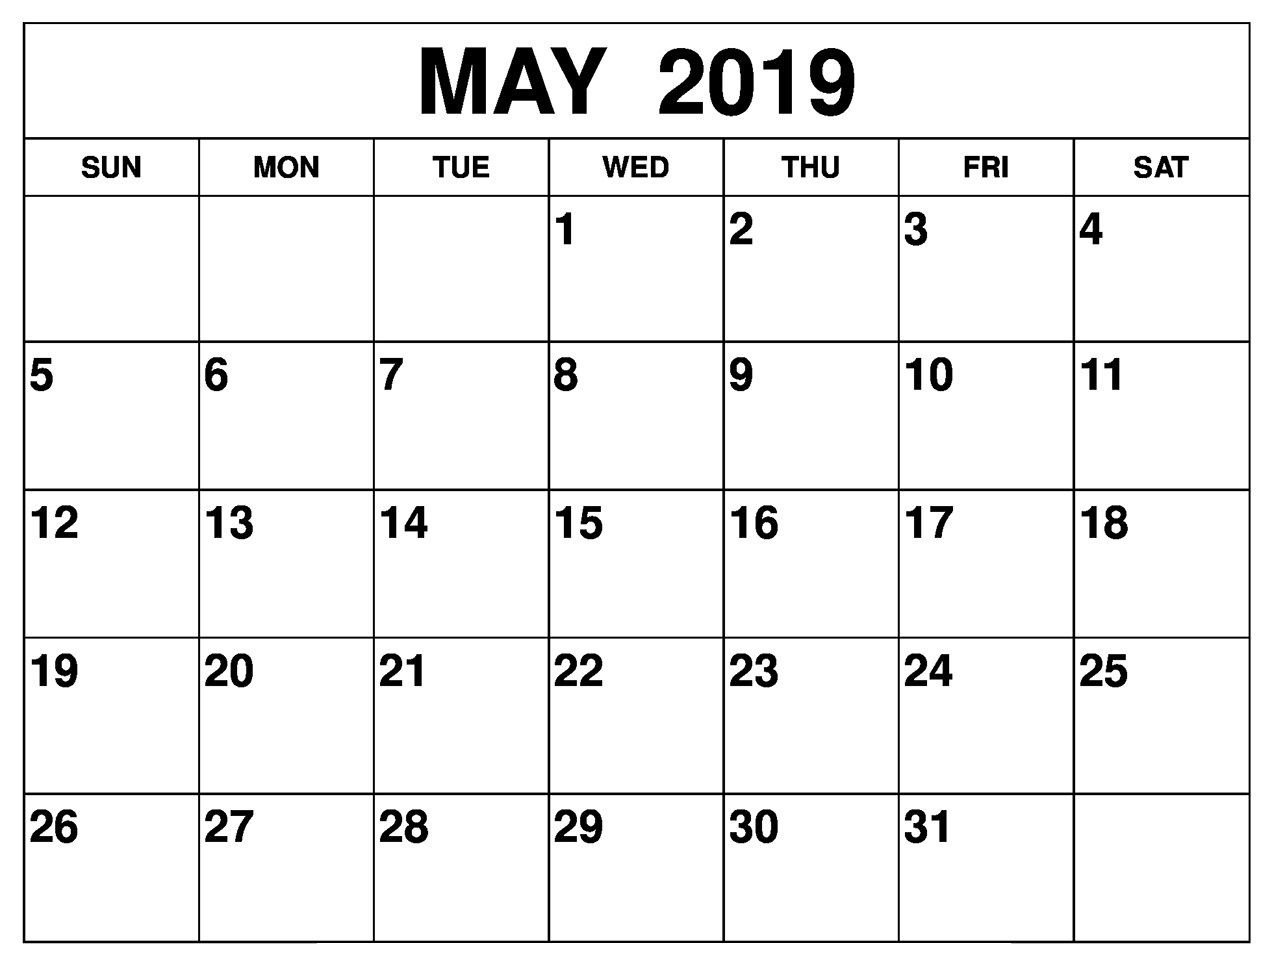 Printable May 2019 Calendar Editable | May 2019 Blank-January 2020 Calendar Printable Wincalendar